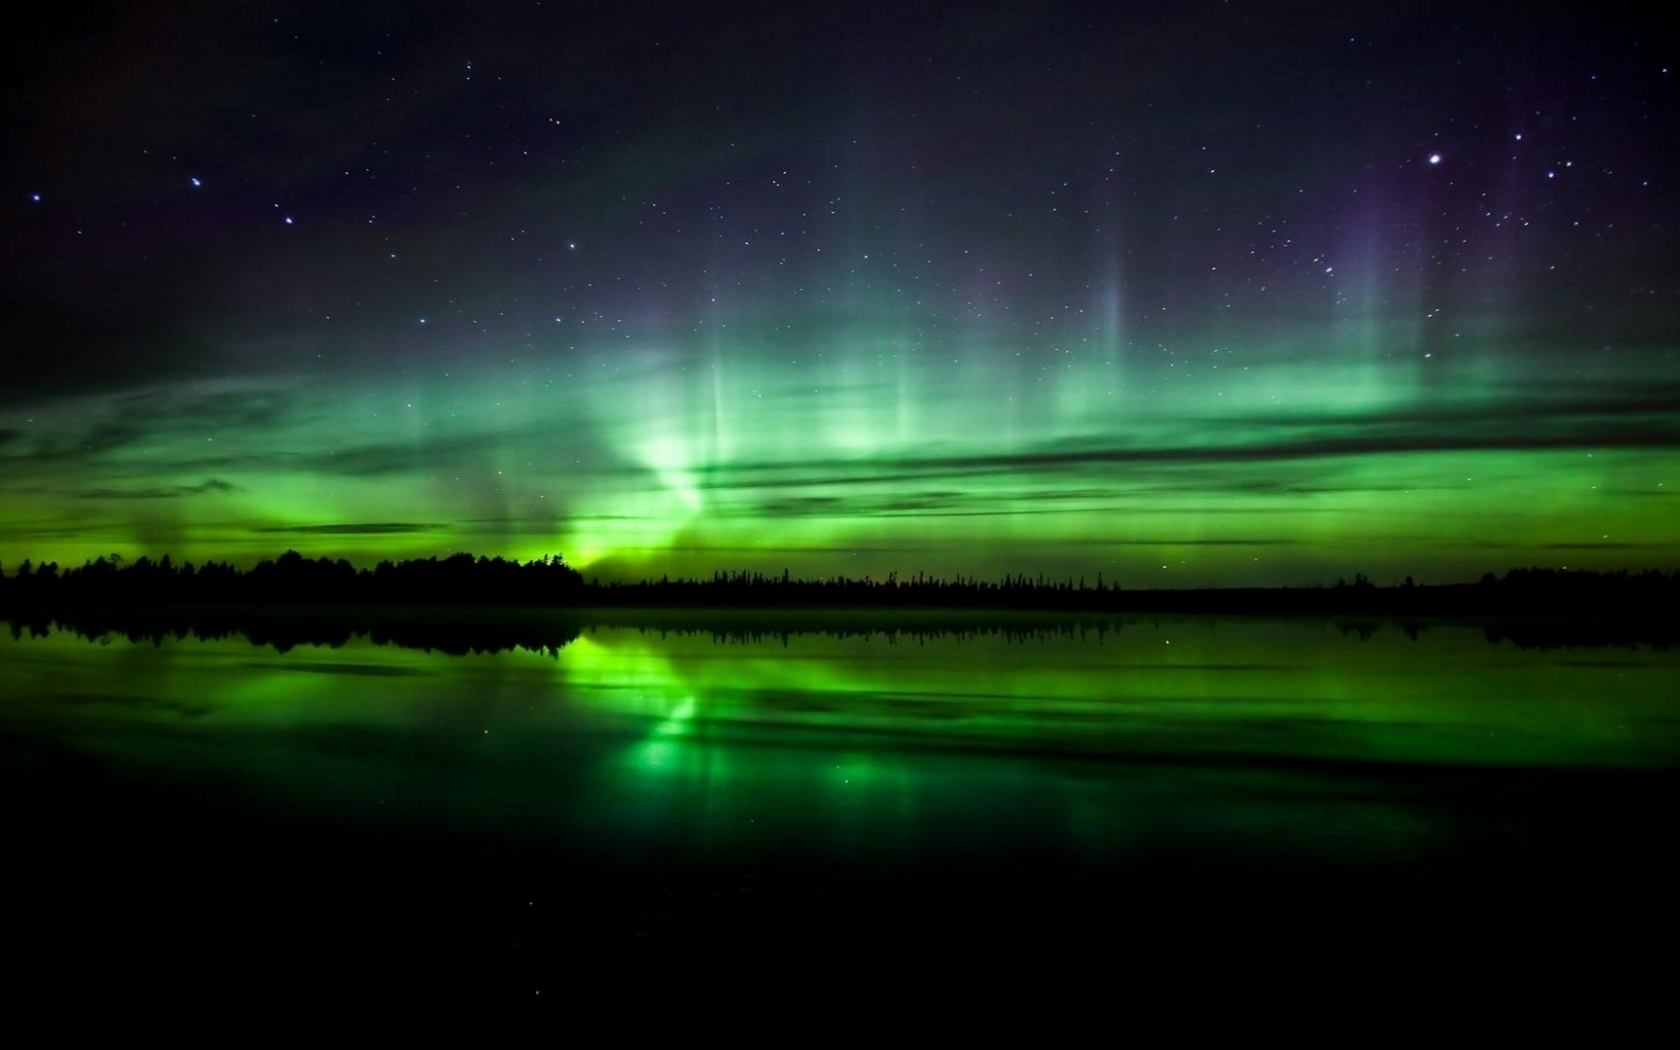 1500x500 light green aurora borealis twitter header photo